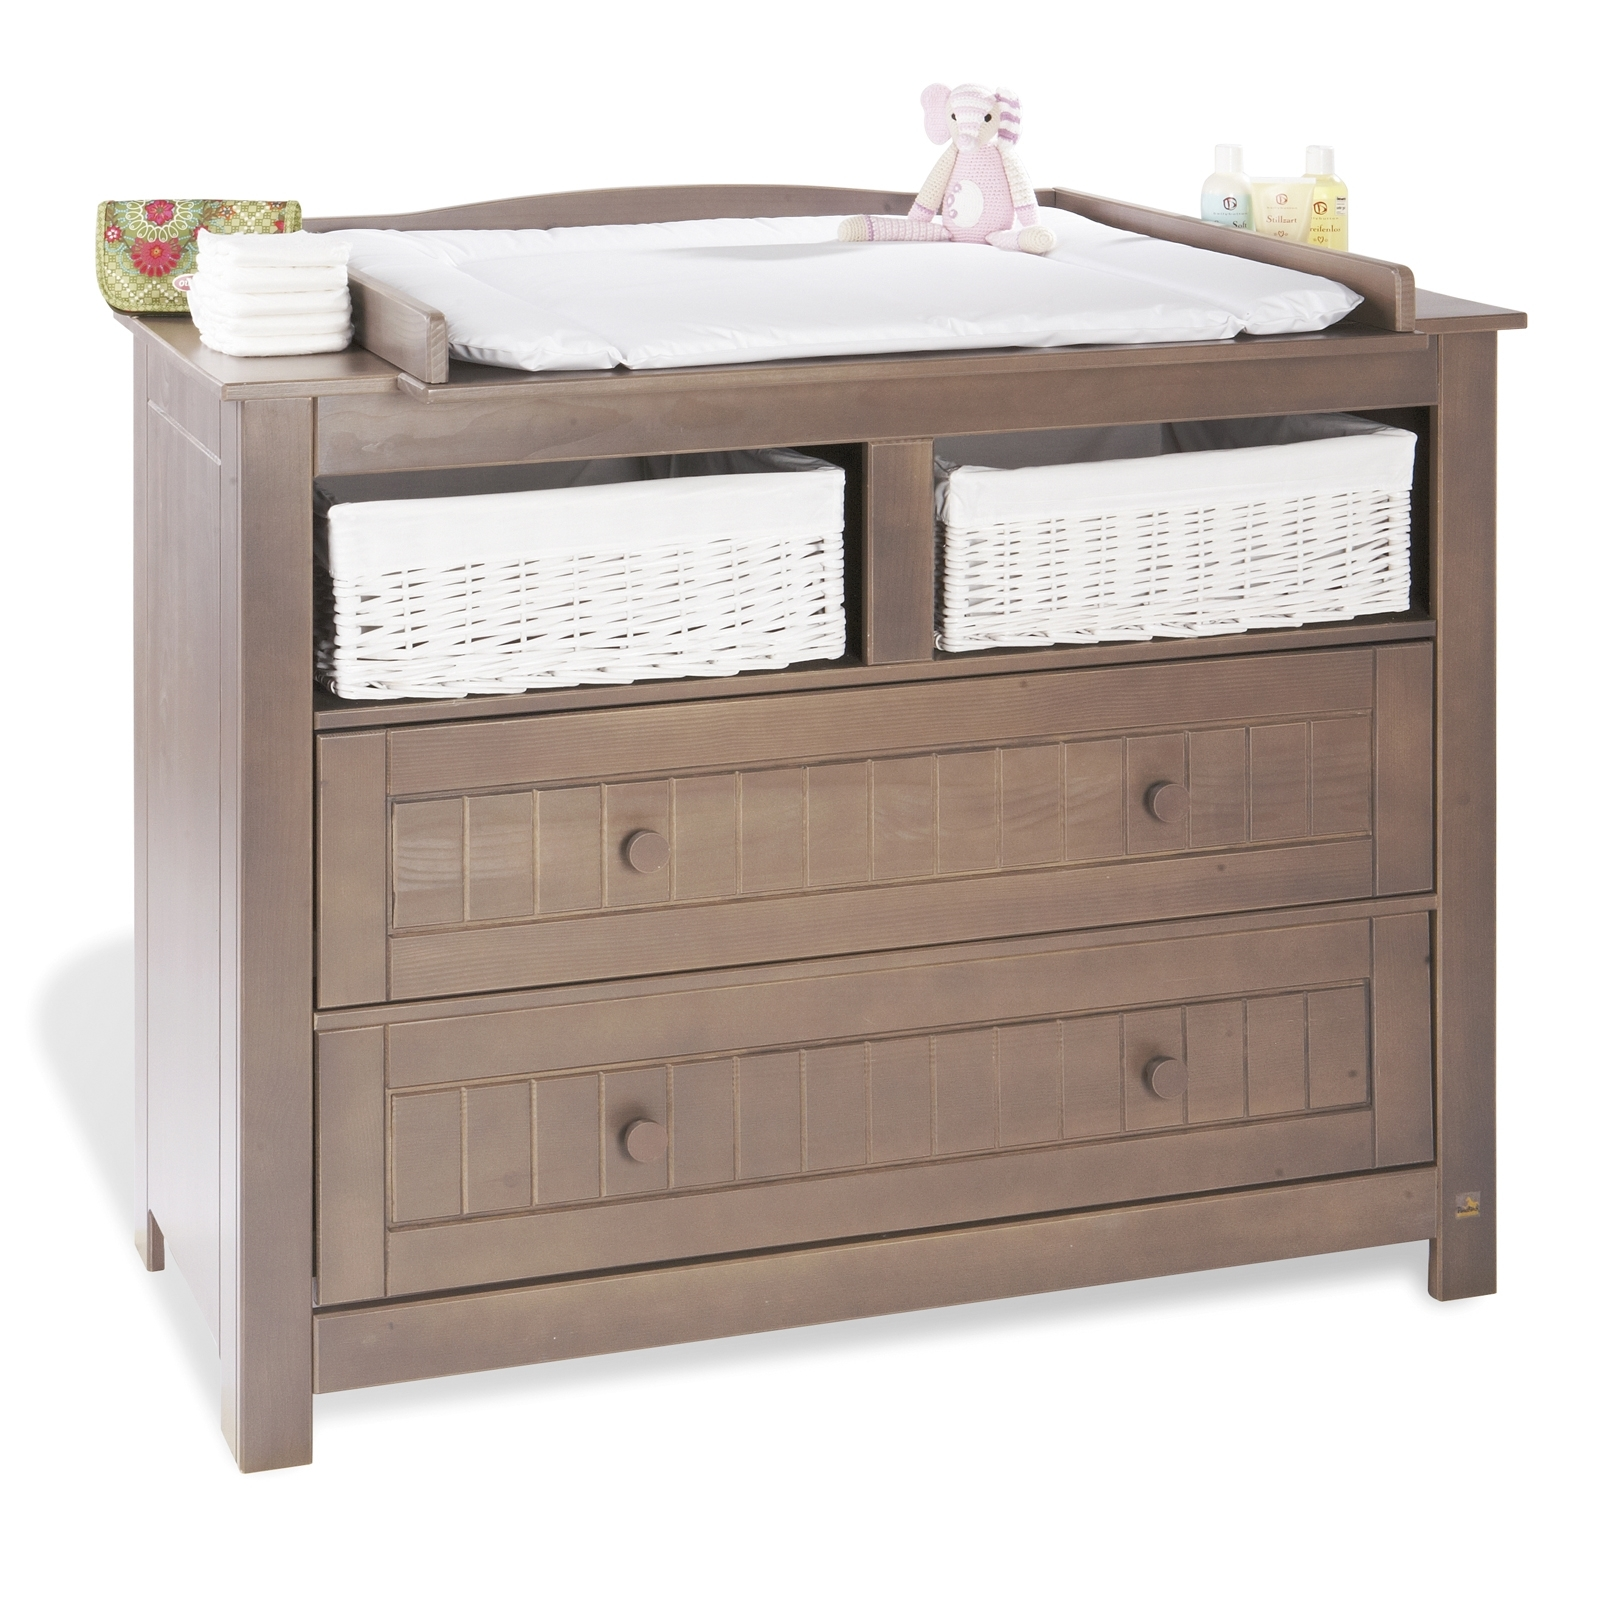 Commode langer epic a massif brun taupe jelka - Commode a langer taupe ...